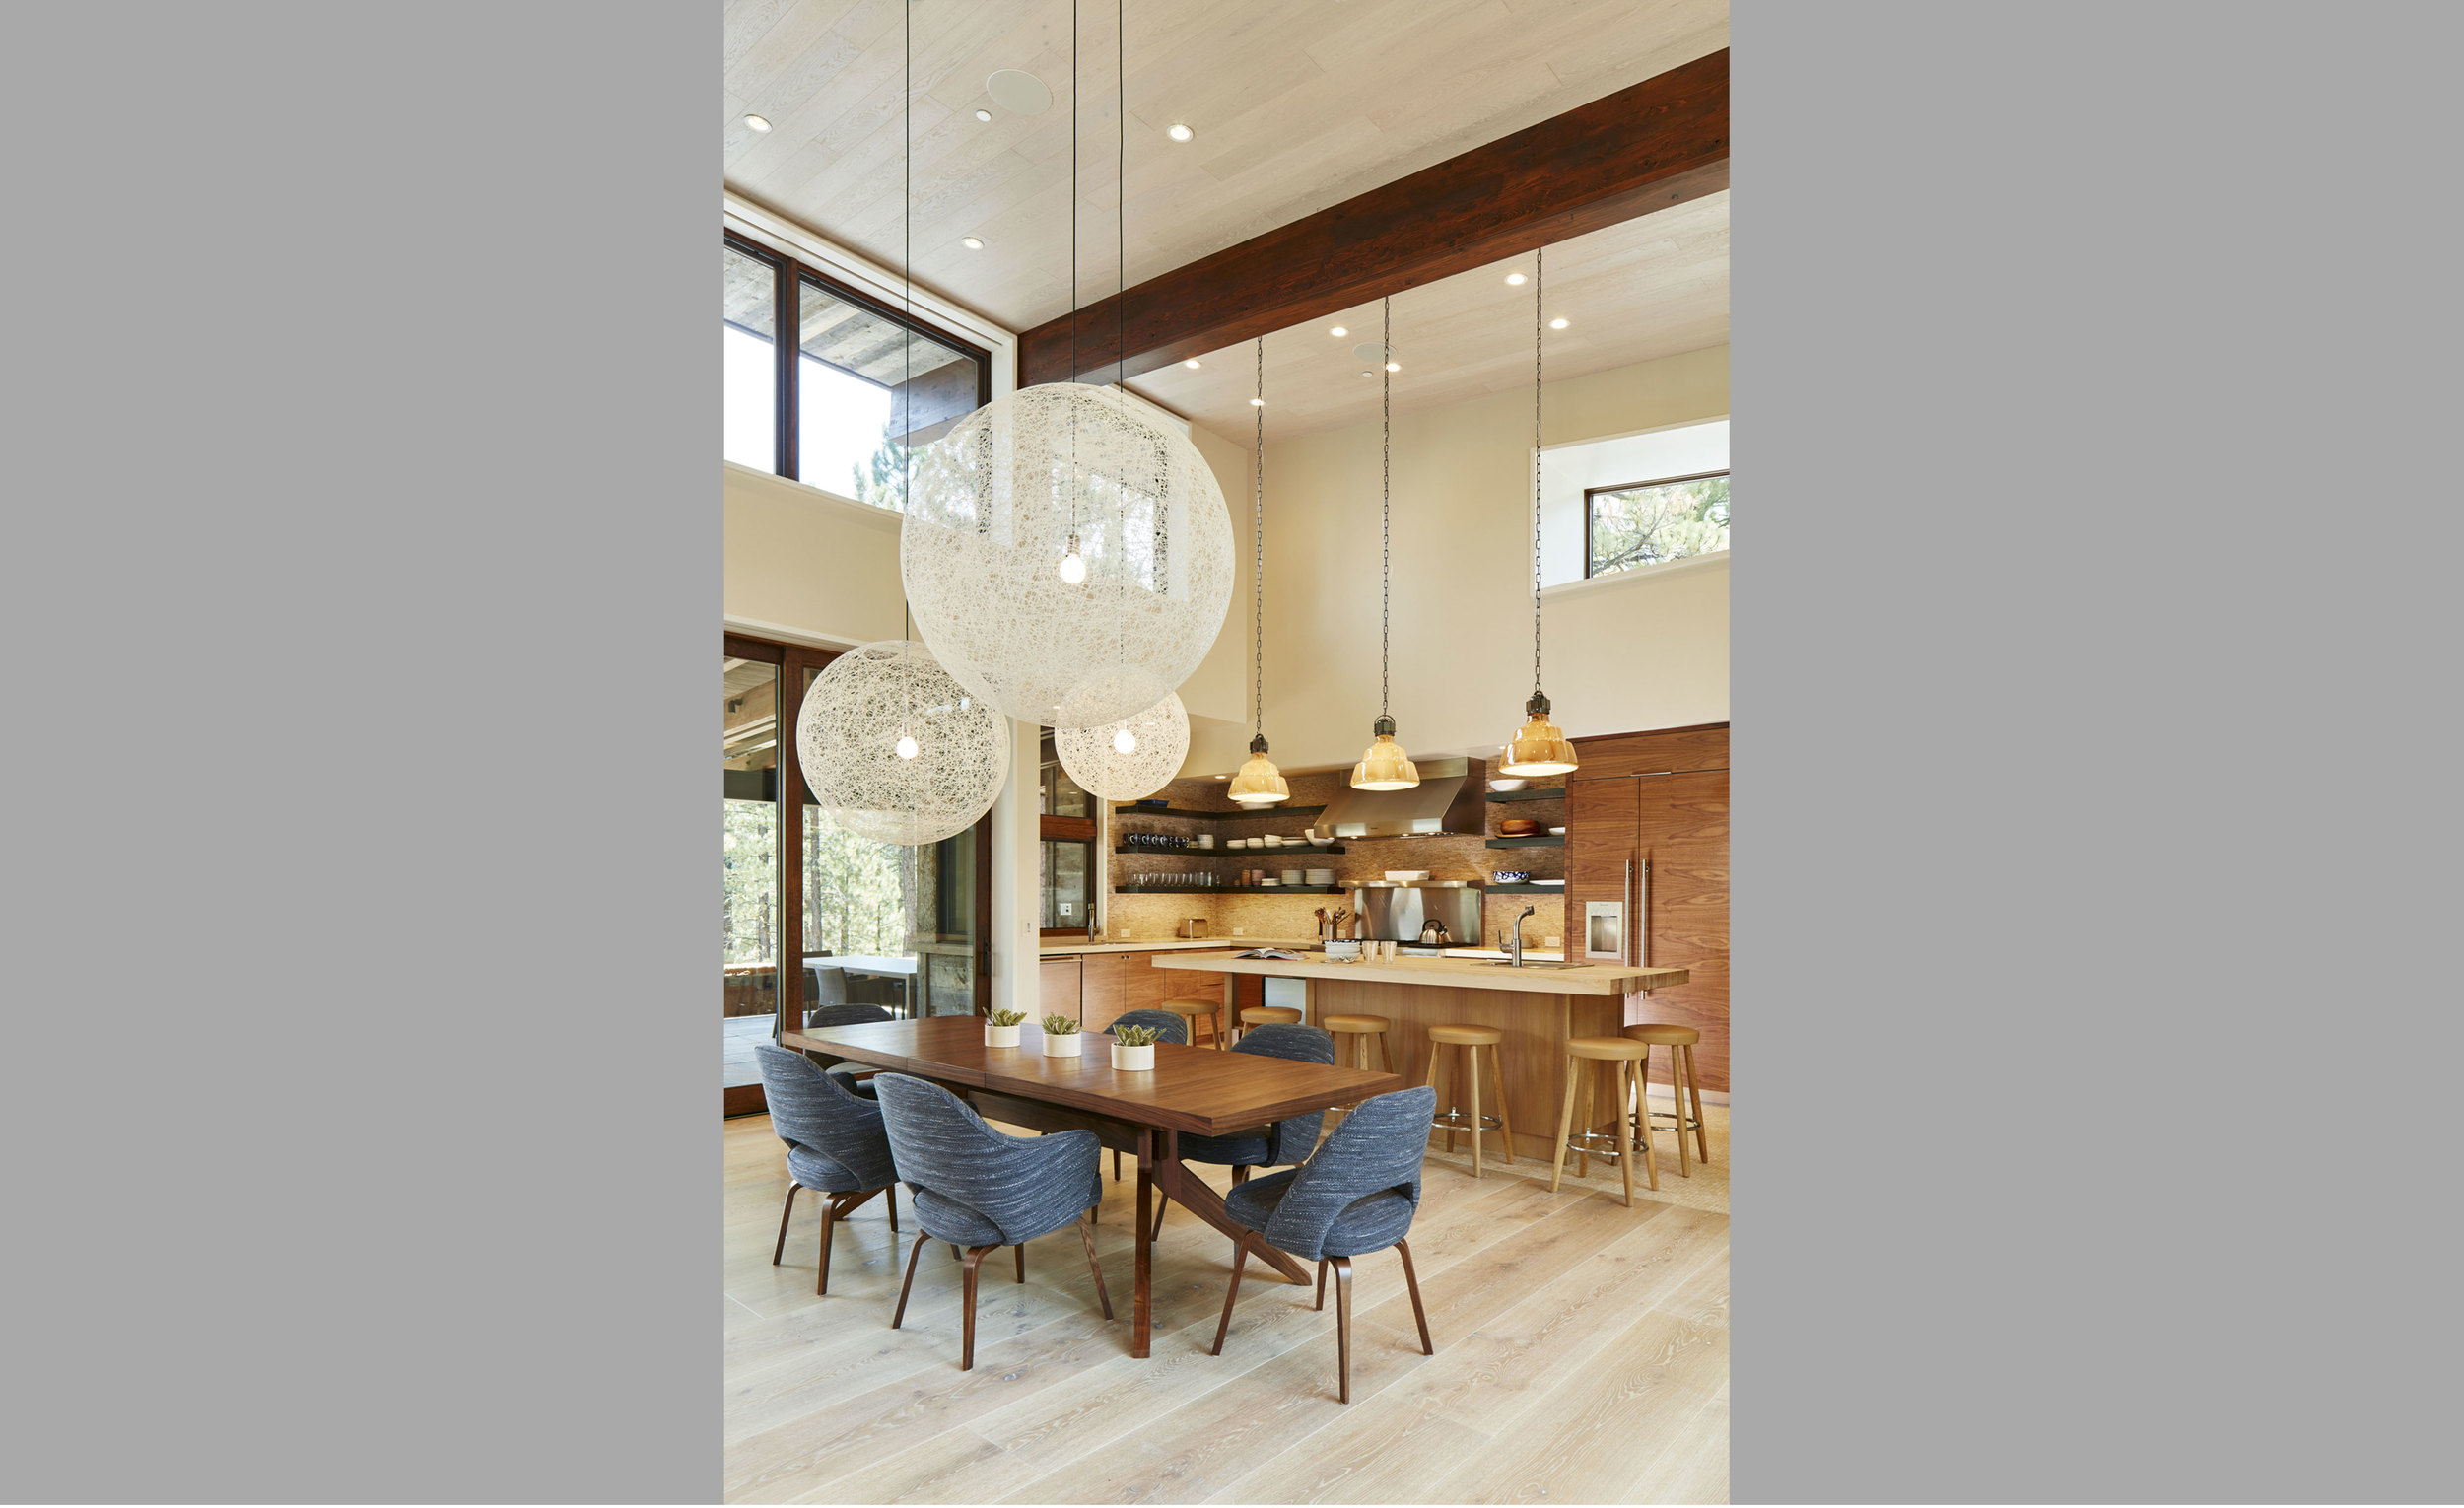 Contractor: Jeff Cotton Construction   Interior Design + Finishes: WaltonAE Photography: Russell Abraham Square Footage: 3,294 sf bedrooms: 3 bathrooms: 3.5